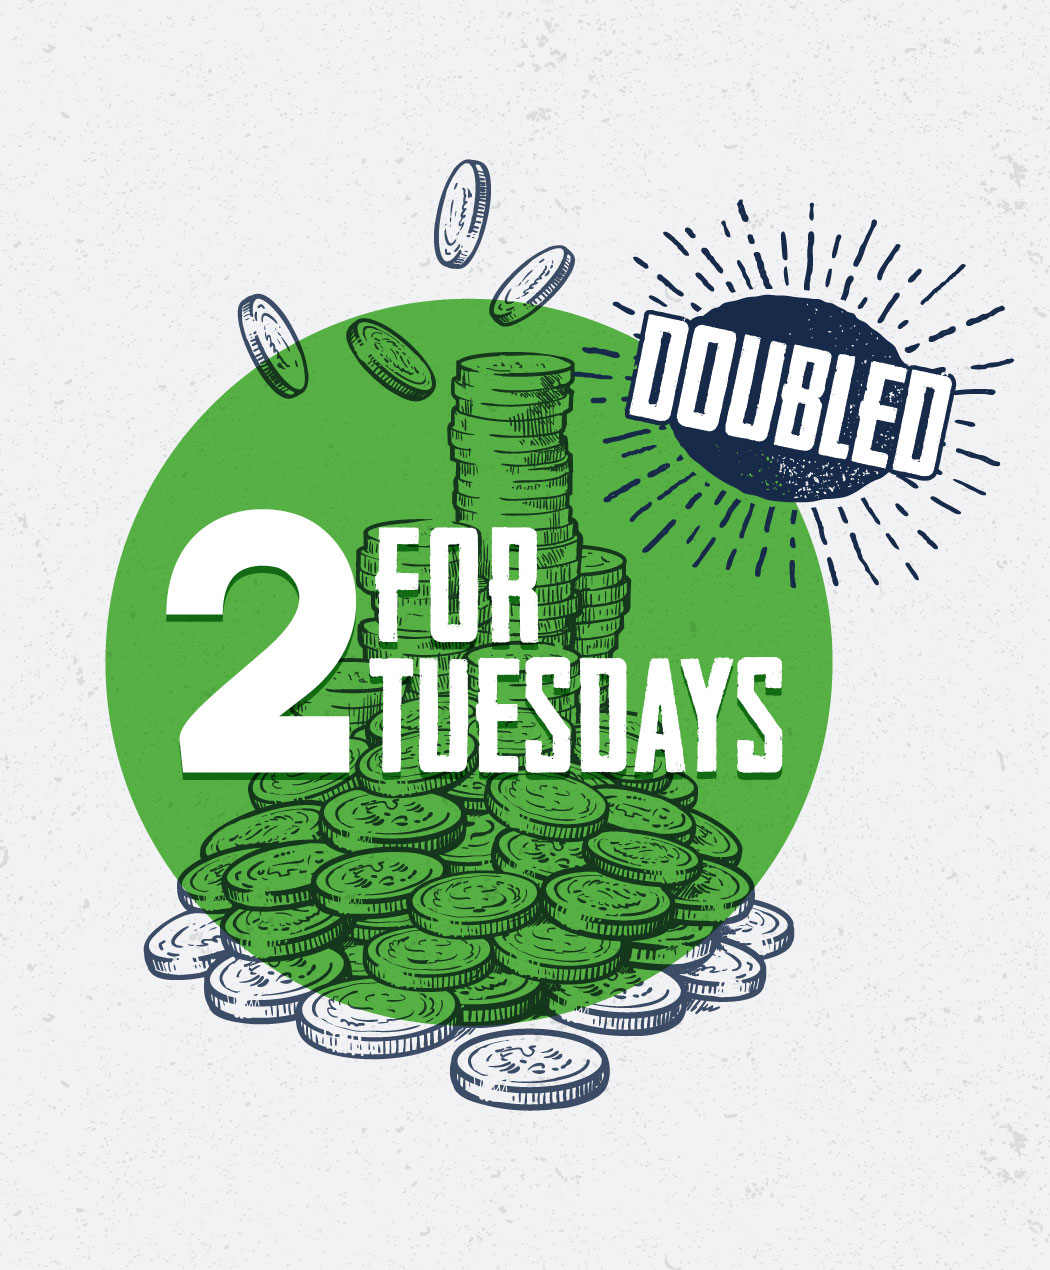 2 For Tuesdays Doubled